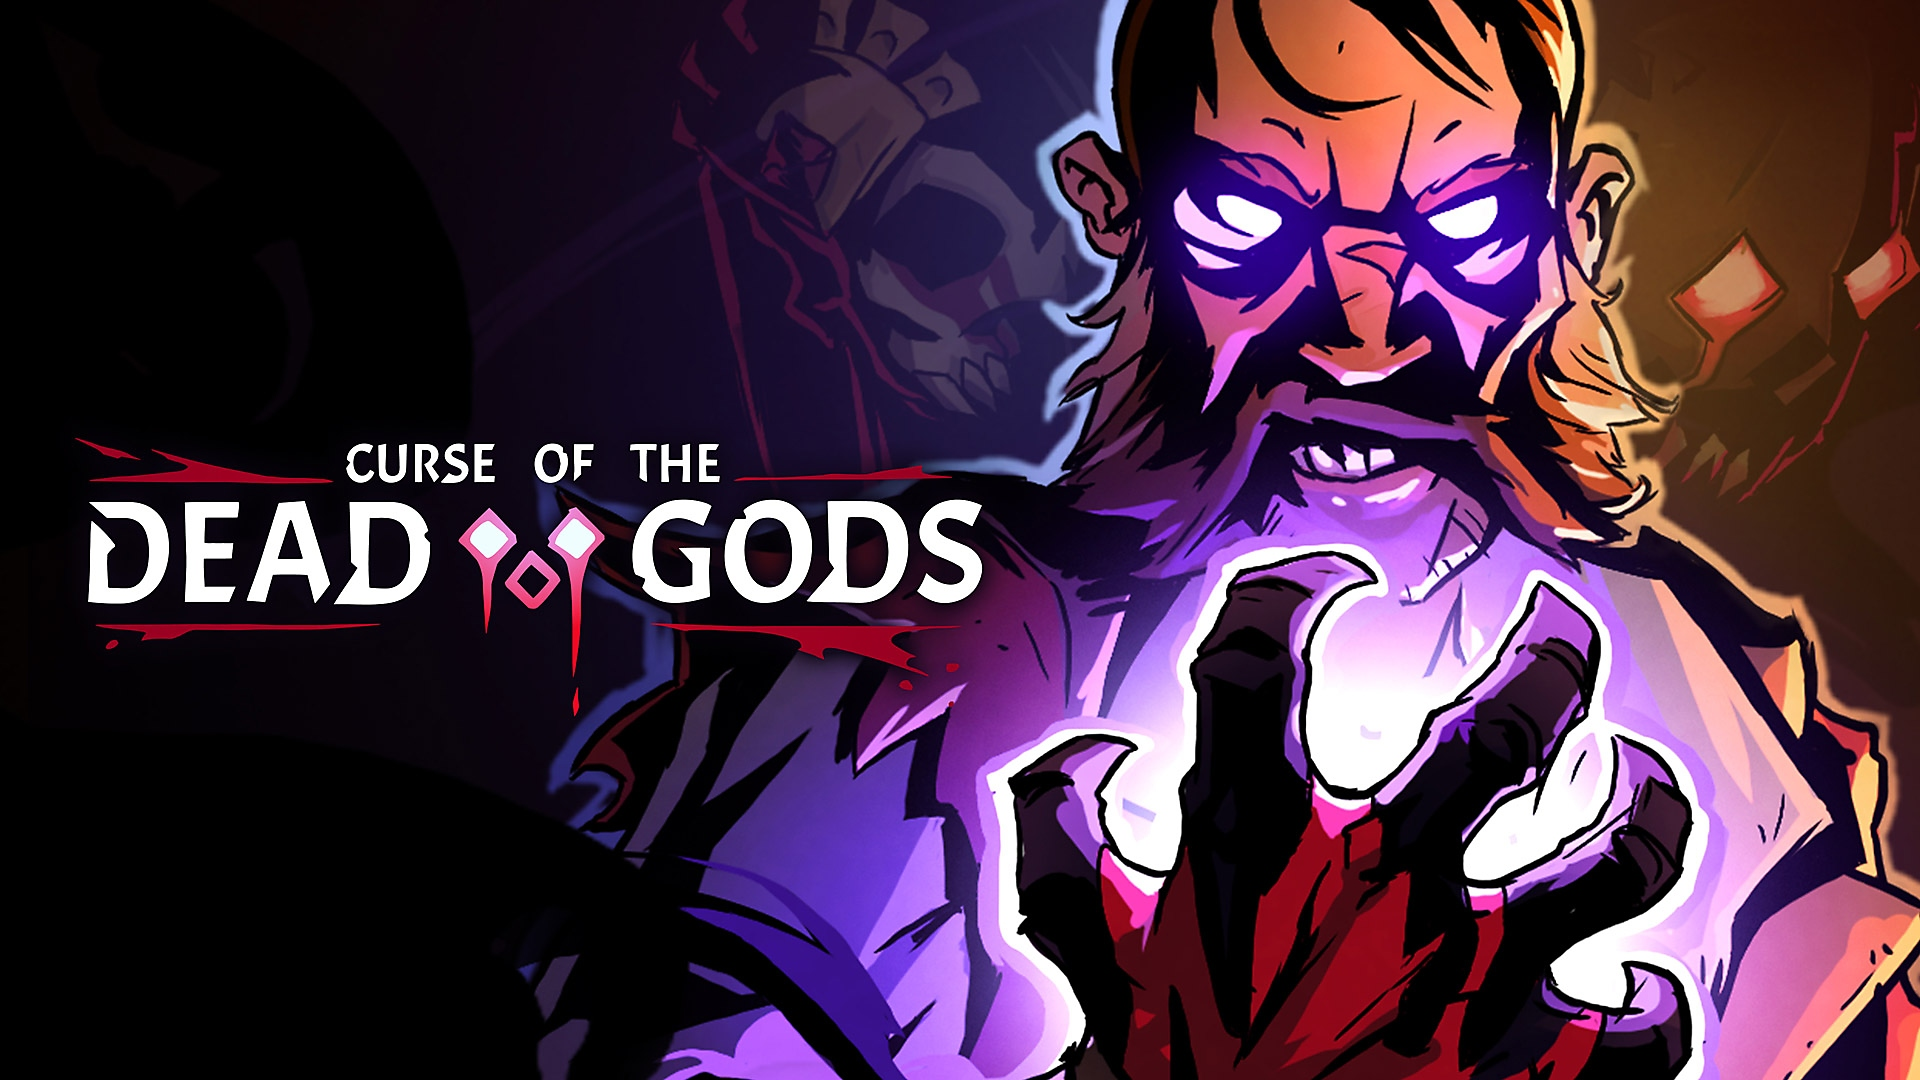 Curse of the Dead Gods - Gameplay Trailer | PS4